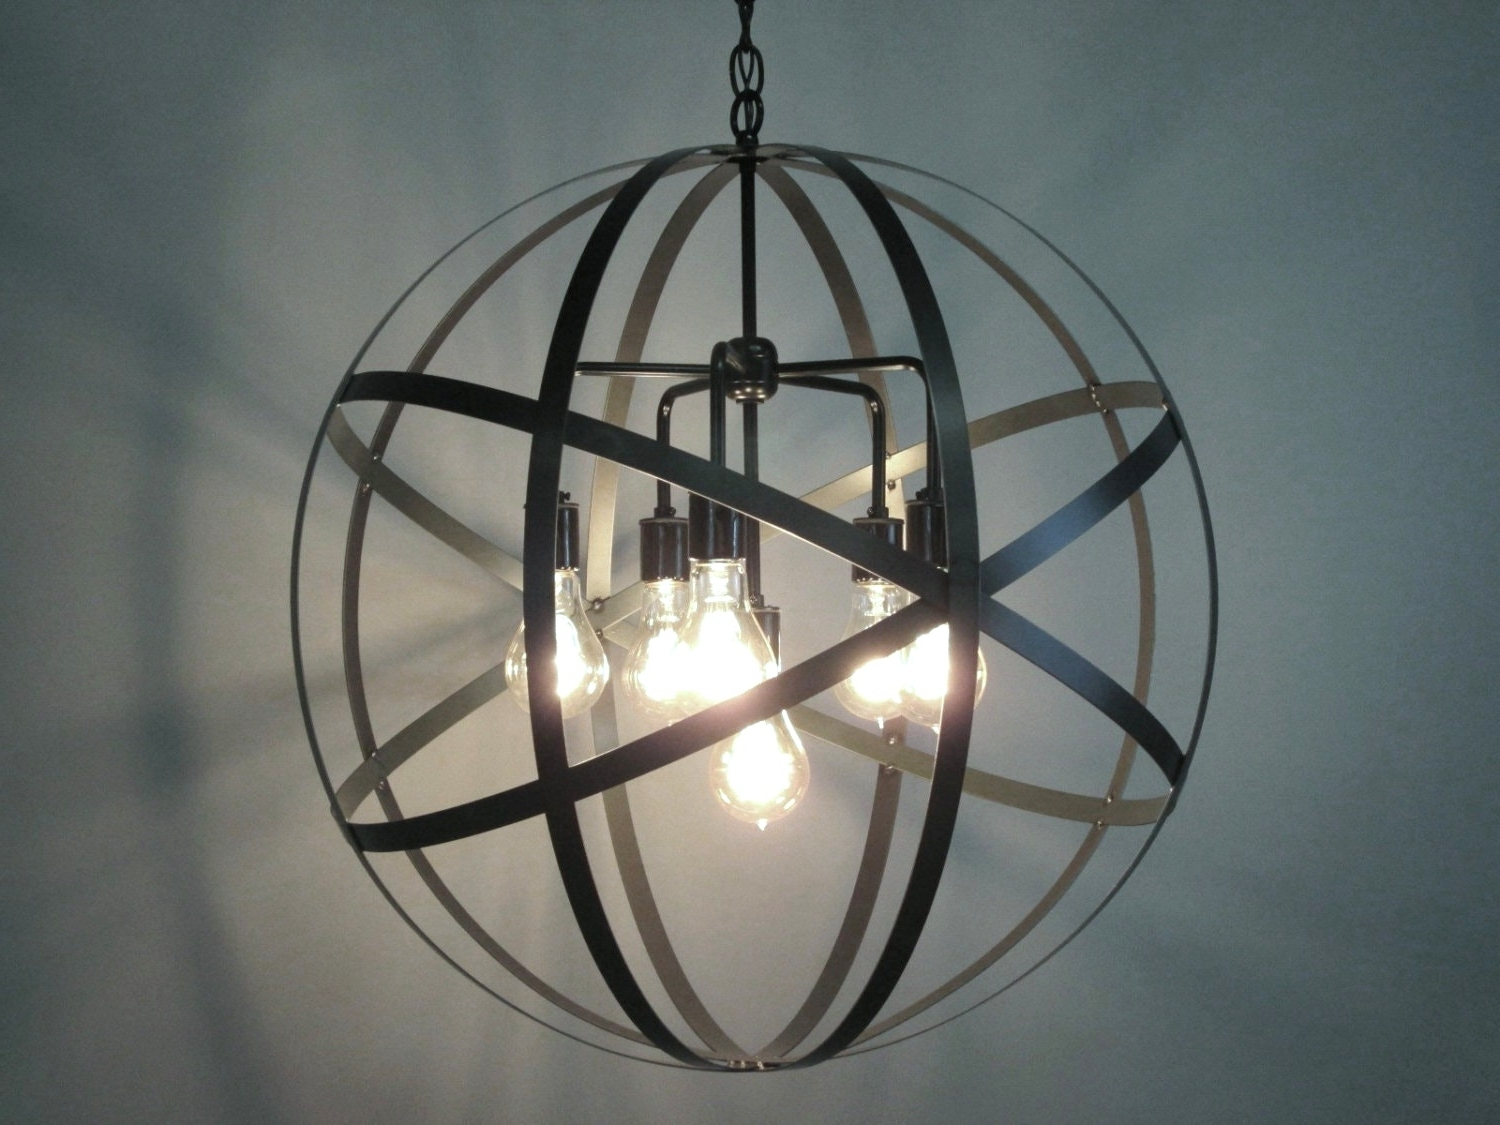 Industrial Orb Chandelier Ceiling Light Sphere 24 With Clear Glass With Latest Orb Chandeliers (View 6 of 15)